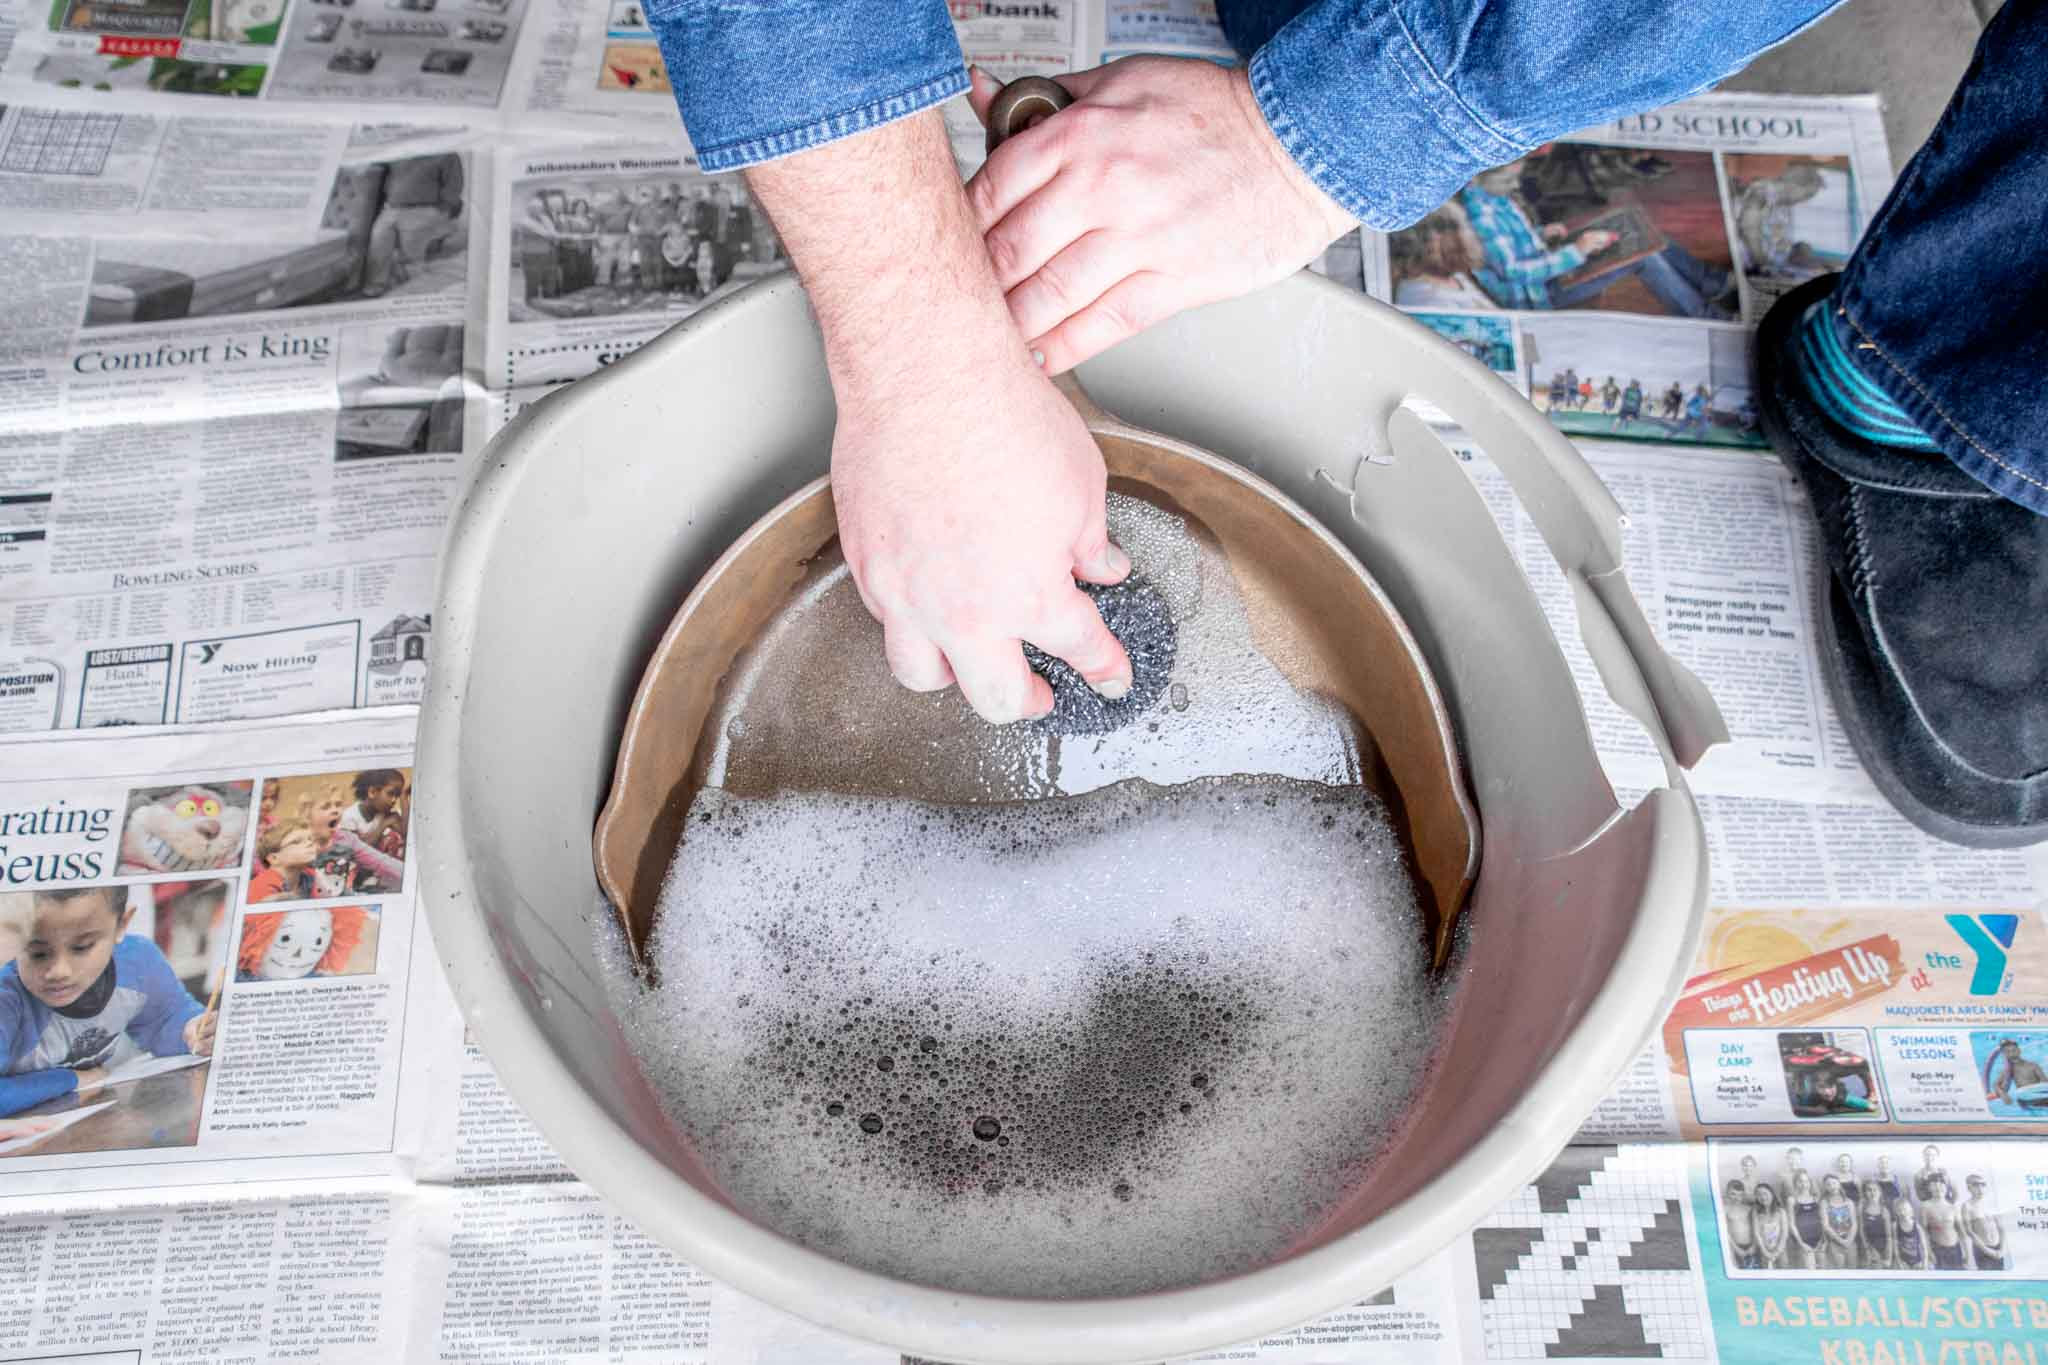 A pan being washed with steel wool